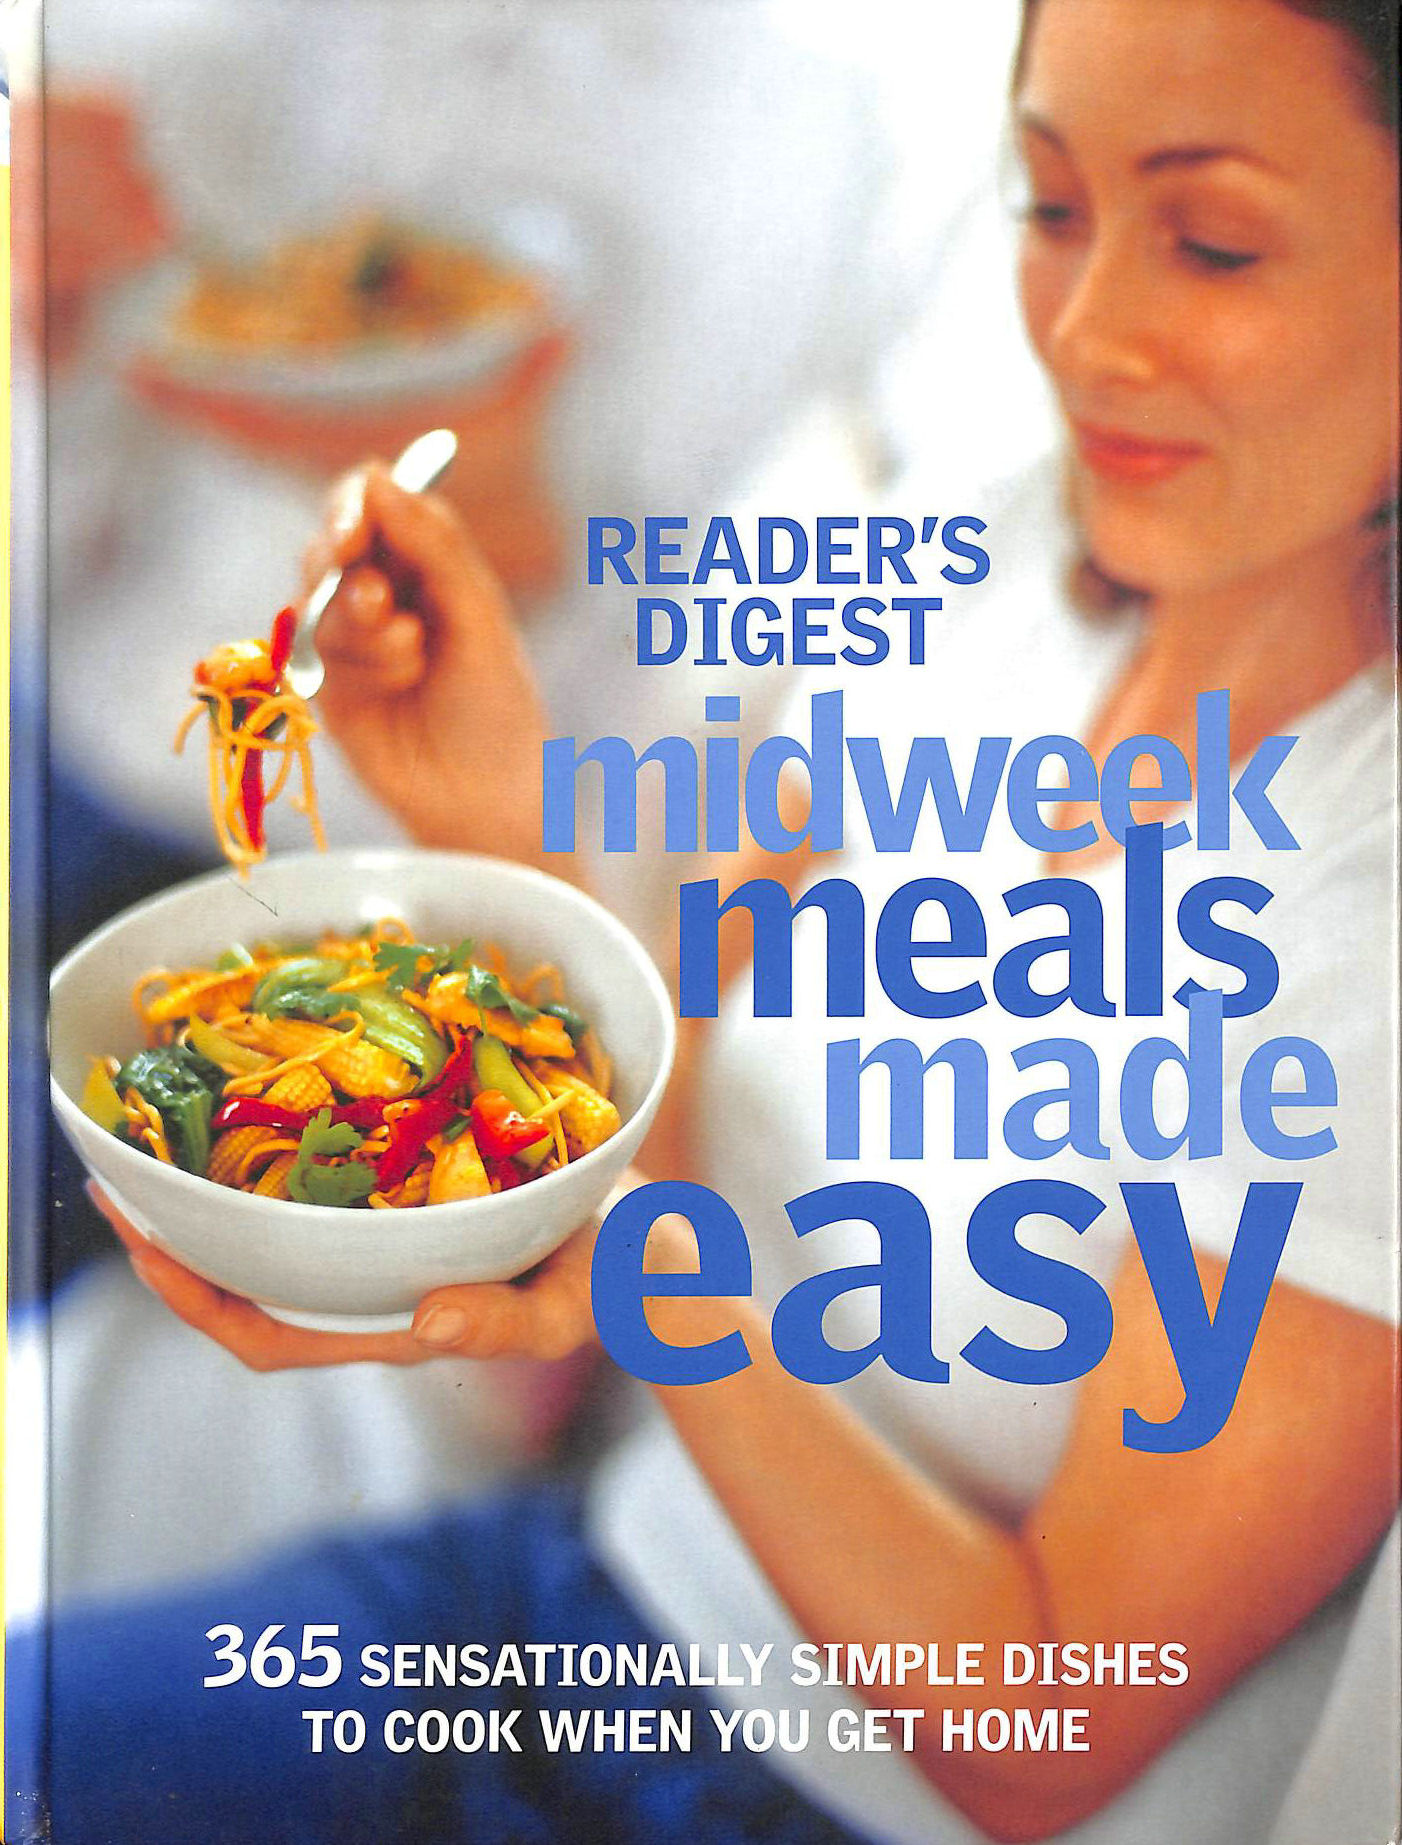 Image for Midweek Meals Made Easy: 365 Sensationally Simple Dishes to Cook When You Get Home (Readers Digest)